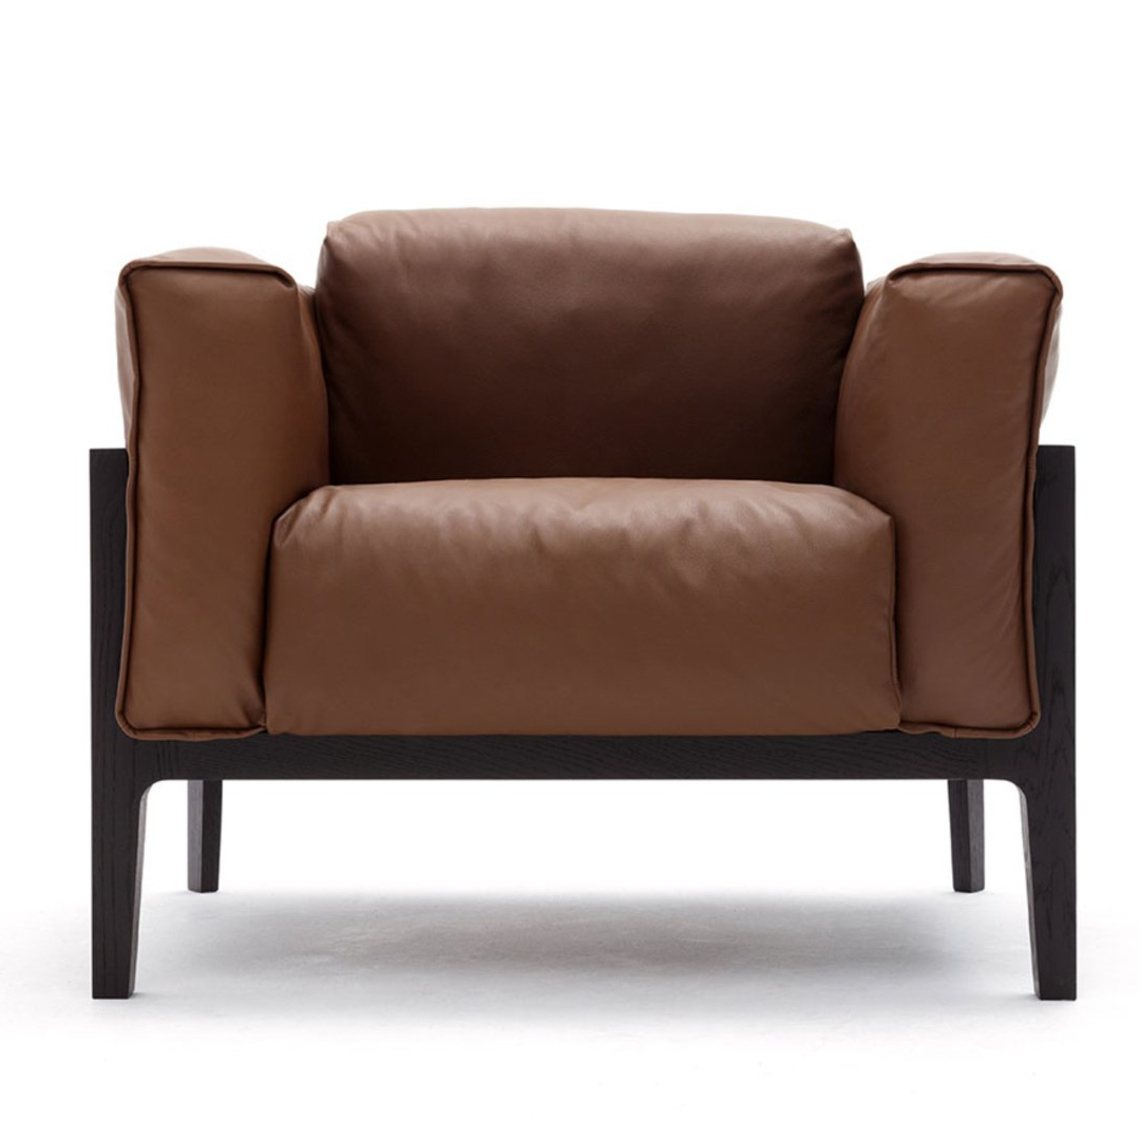 Cor – Klaus, Timeless Classics | Canada's Longest Running Within Elm Sofa Chairs (View 12 of 25)